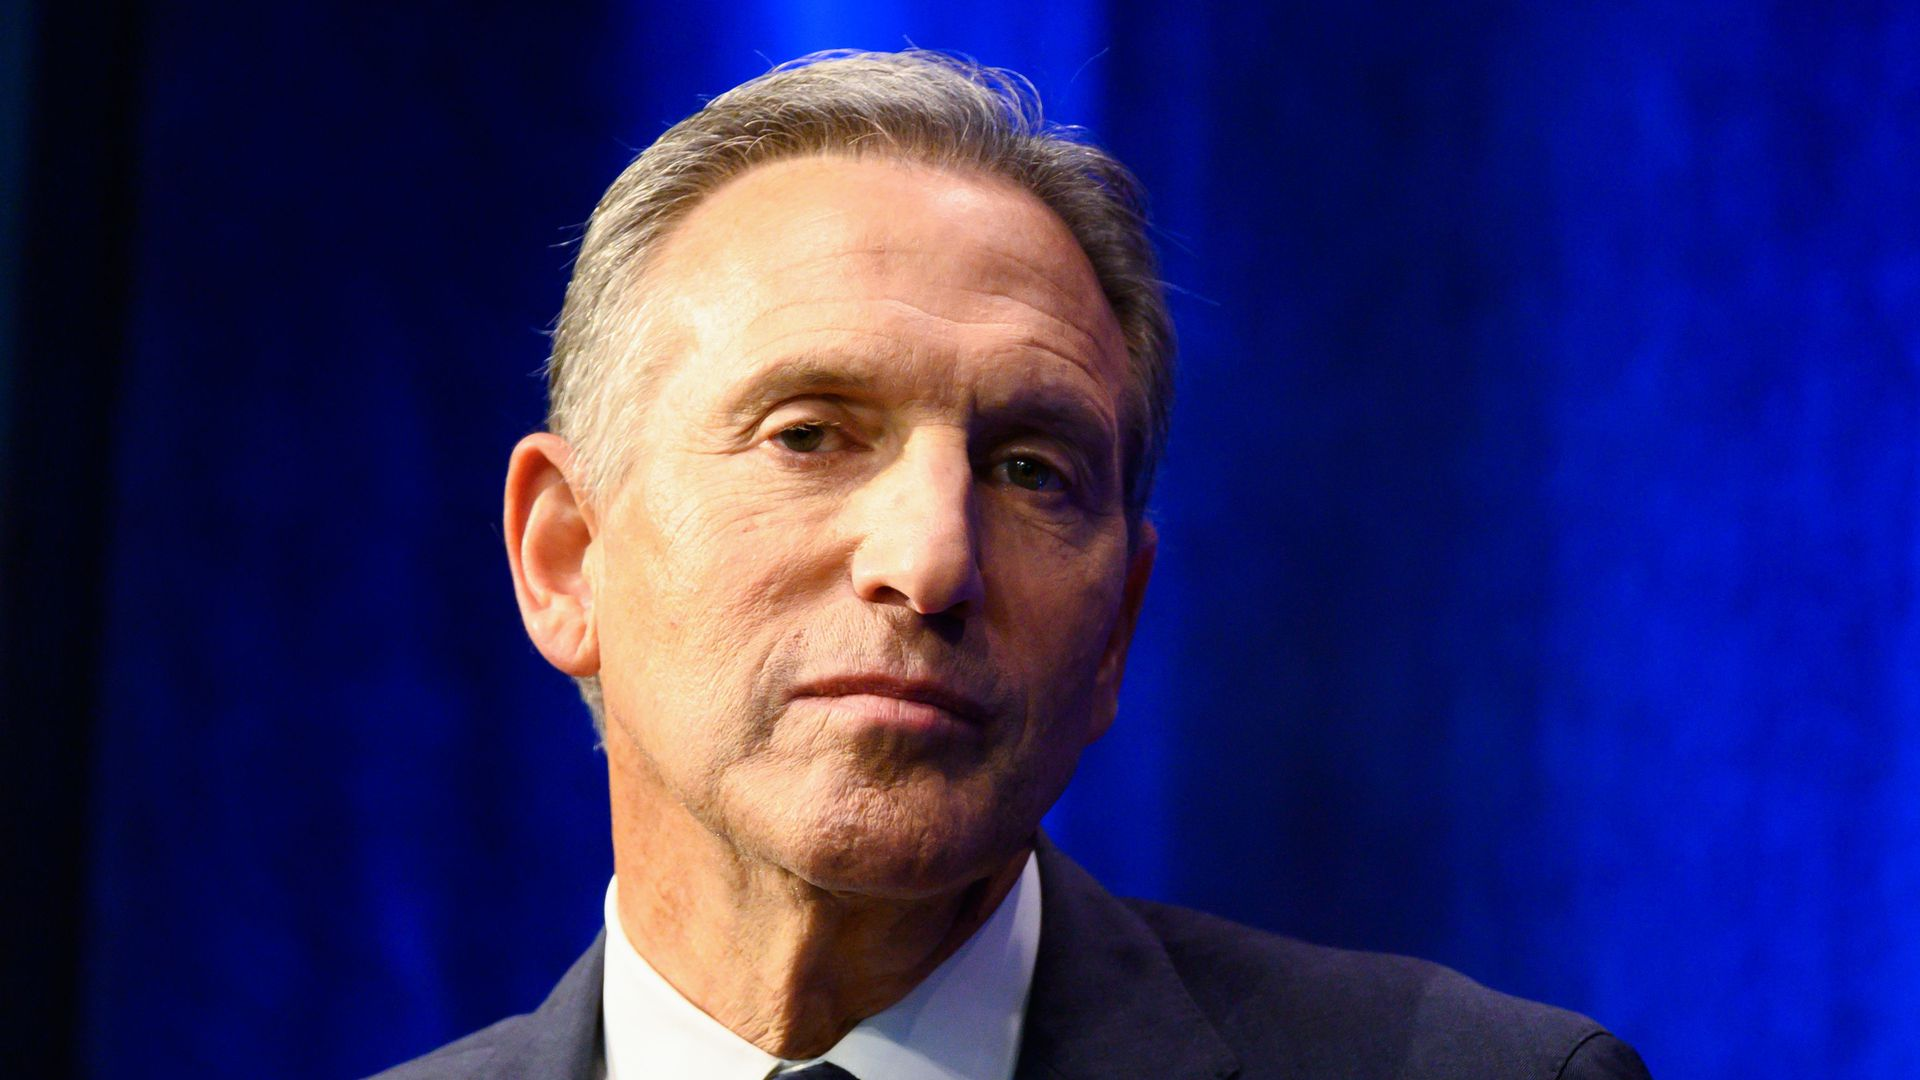 Howard Schultz close up